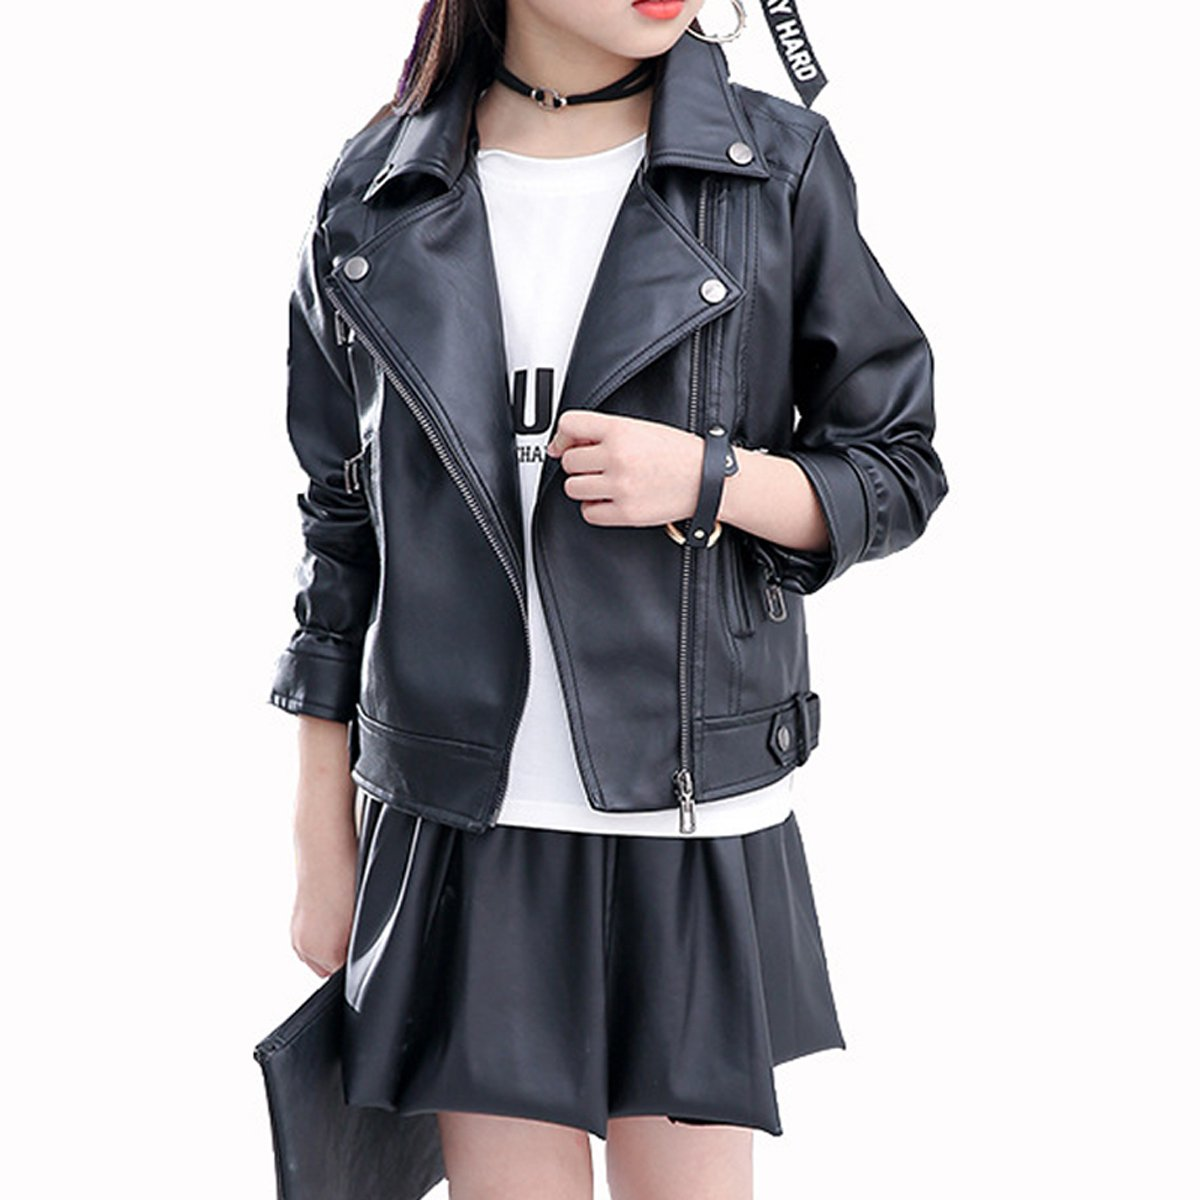 Elife Girls Fashion PU Leather Motorcycle Jacket Children's Outerwear Slim Coat Black 8-9Y … by Elife